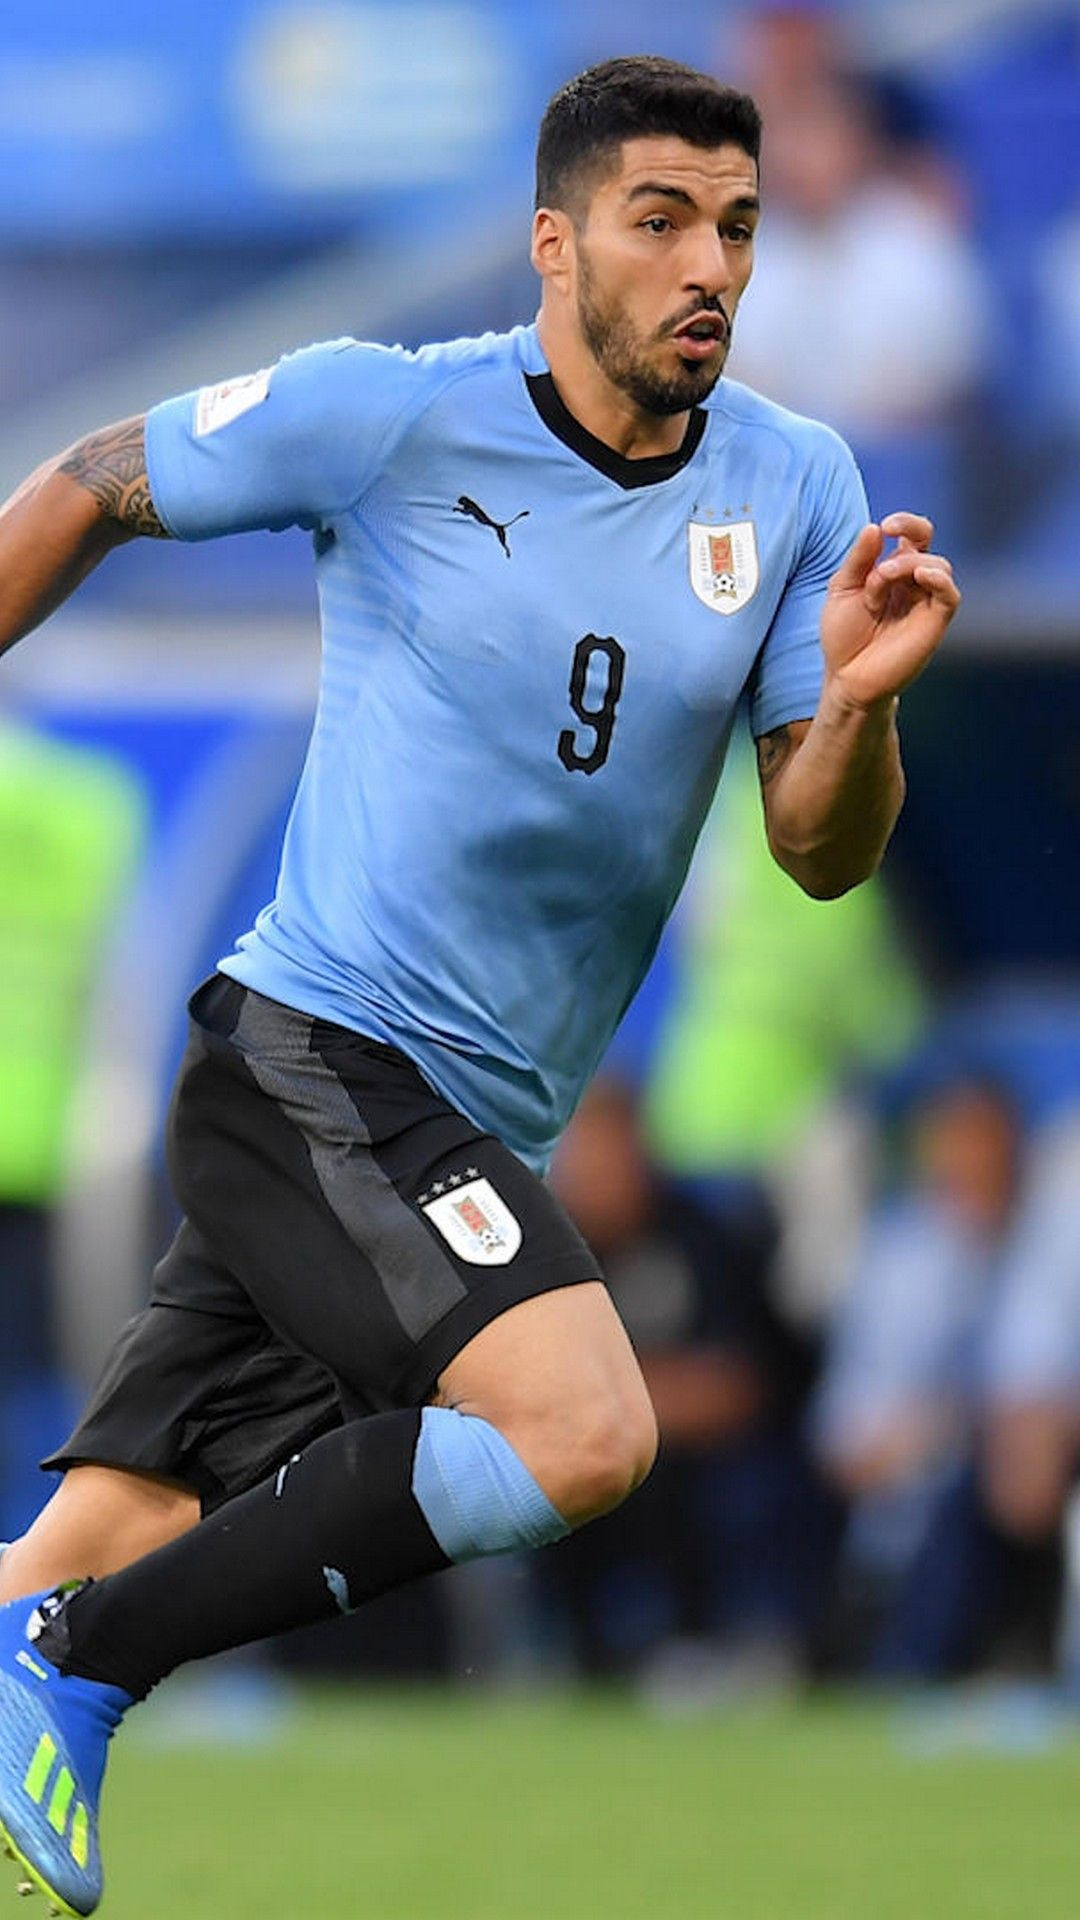 Luis Suarez Uruguay Wallpaper For Android   Best Mobile Wallpaper 1080x1920